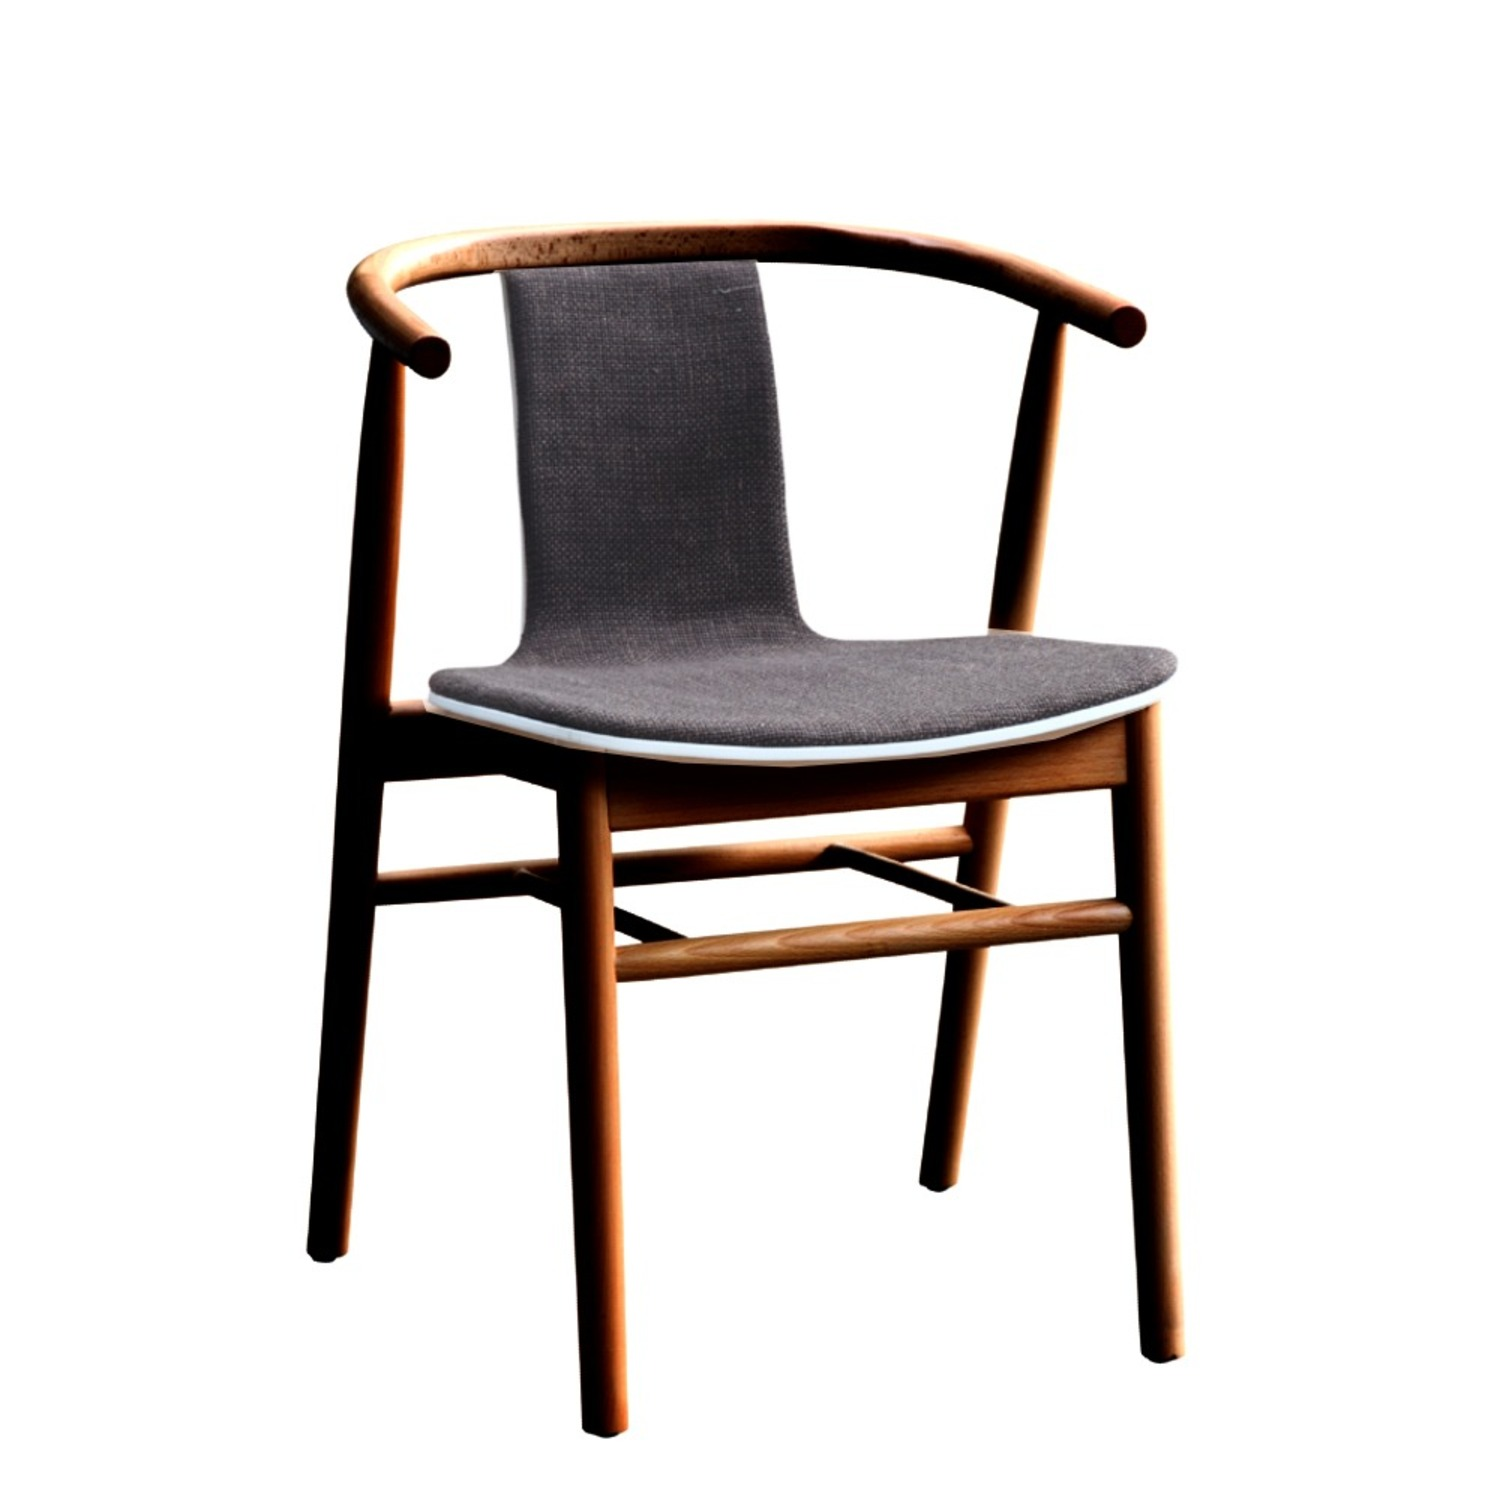 Side Chair In Walnut Wood Frame W/ Cotton Seat - image-0